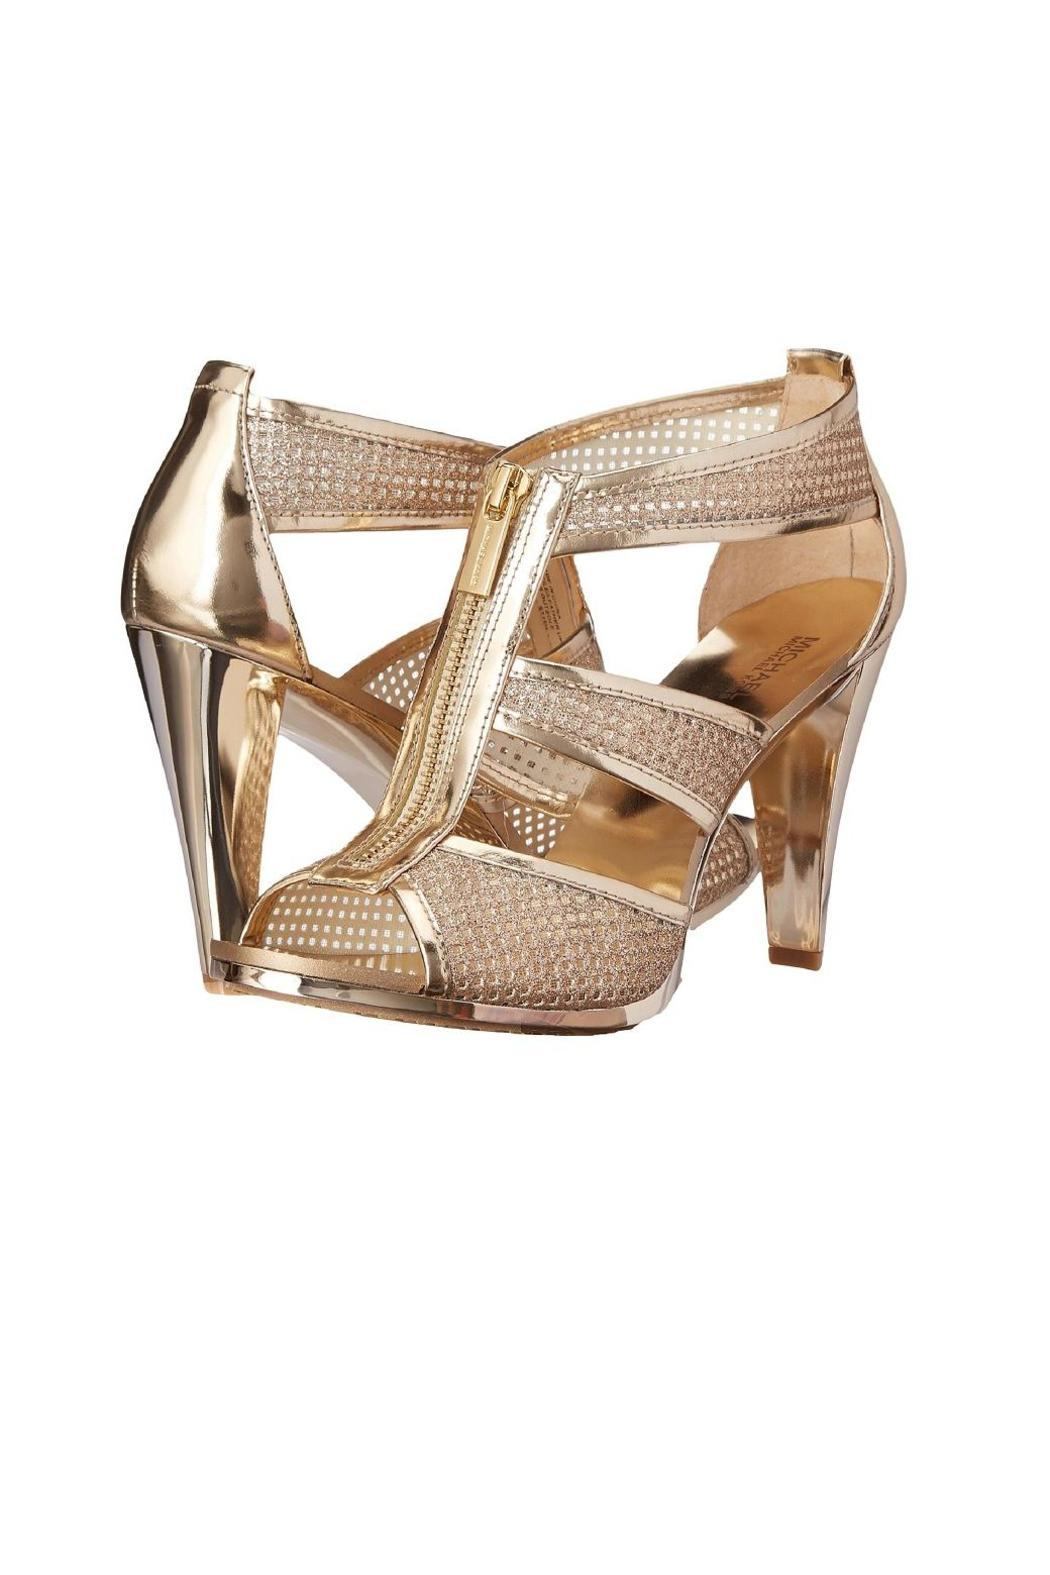 michael kors t strap high heel from canada by modern sole. Black Bedroom Furniture Sets. Home Design Ideas